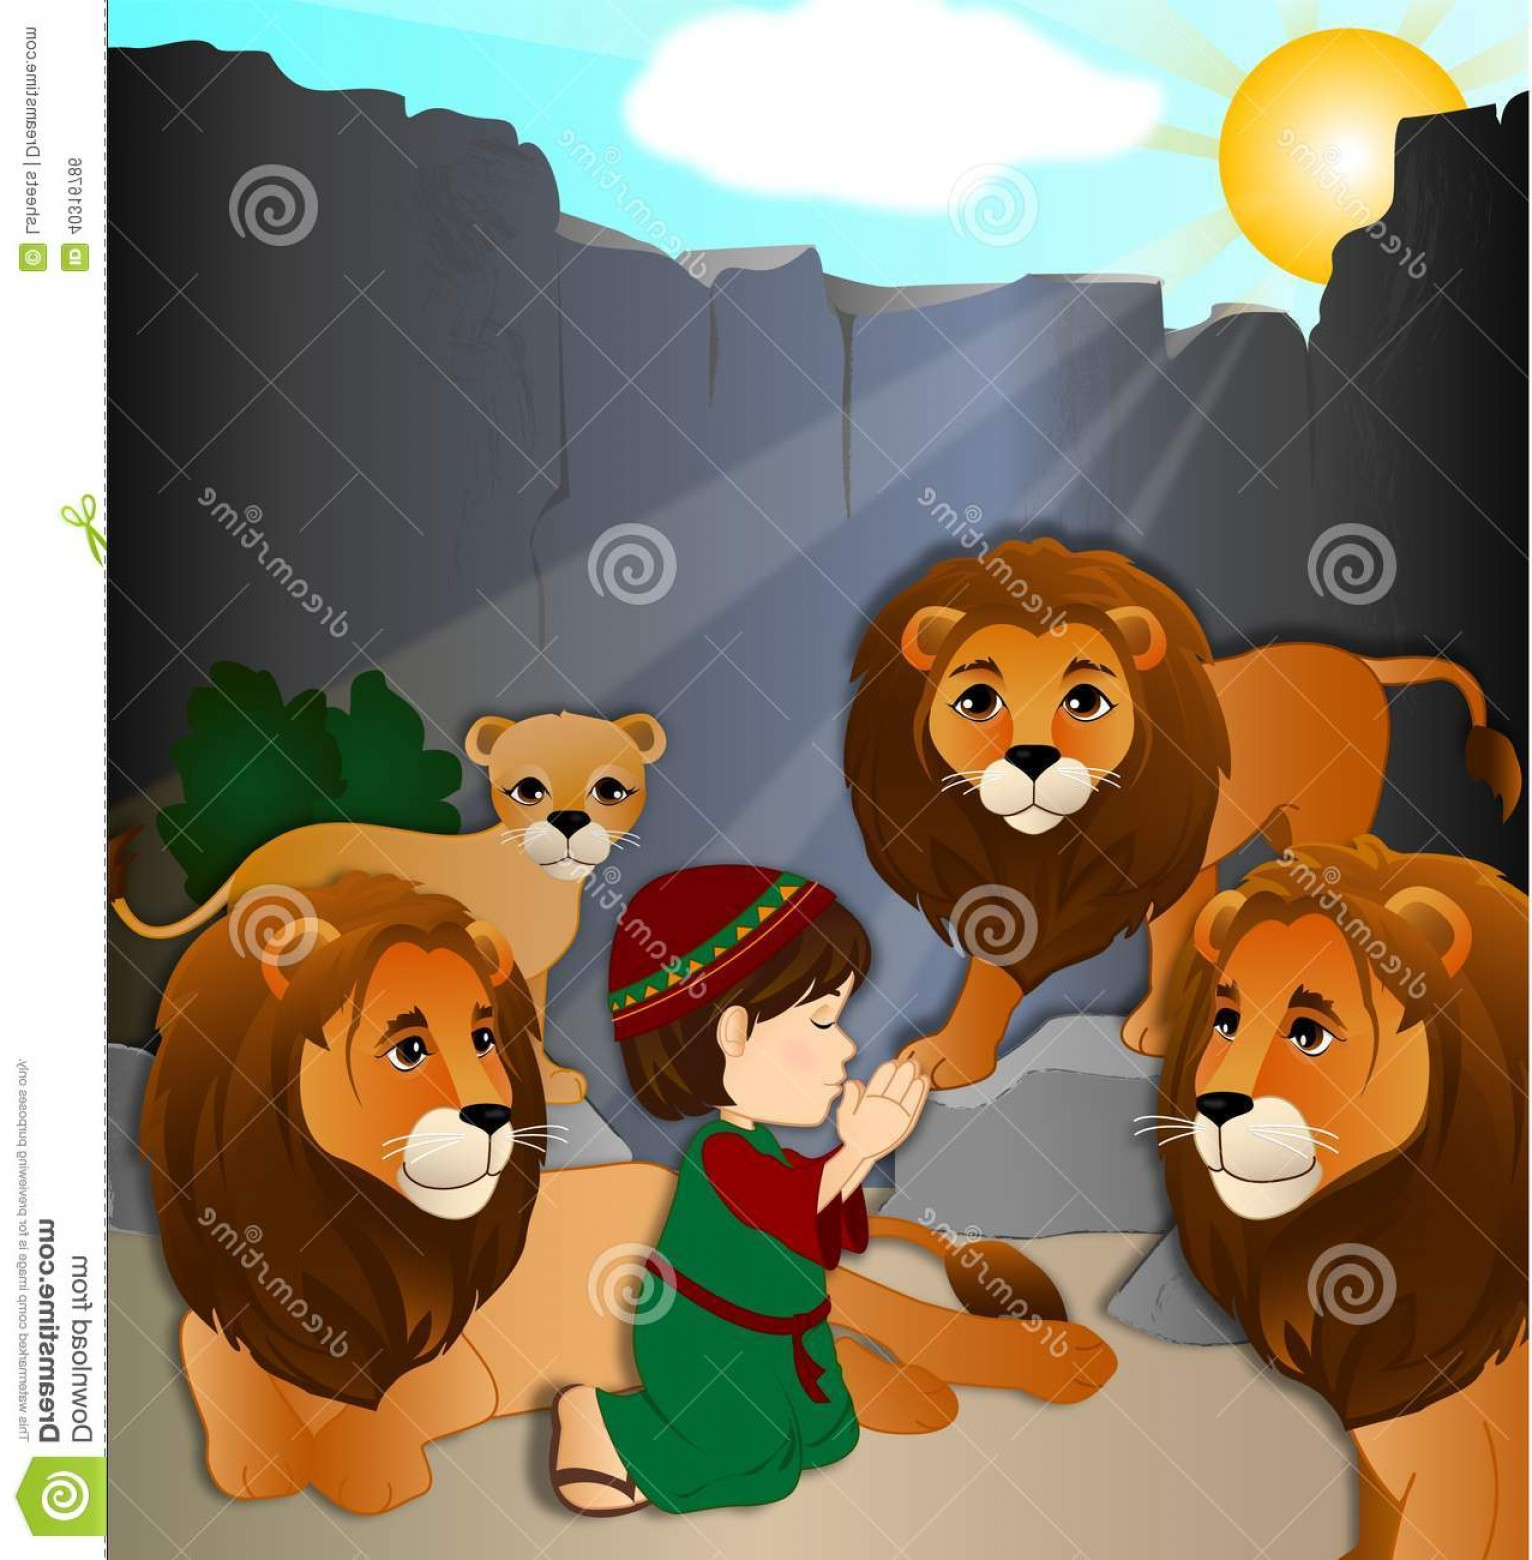 Faith Lions Vector Art Images: Stock Photos Daniel Lions Den Cartoon Bones Laying Not Worried Image